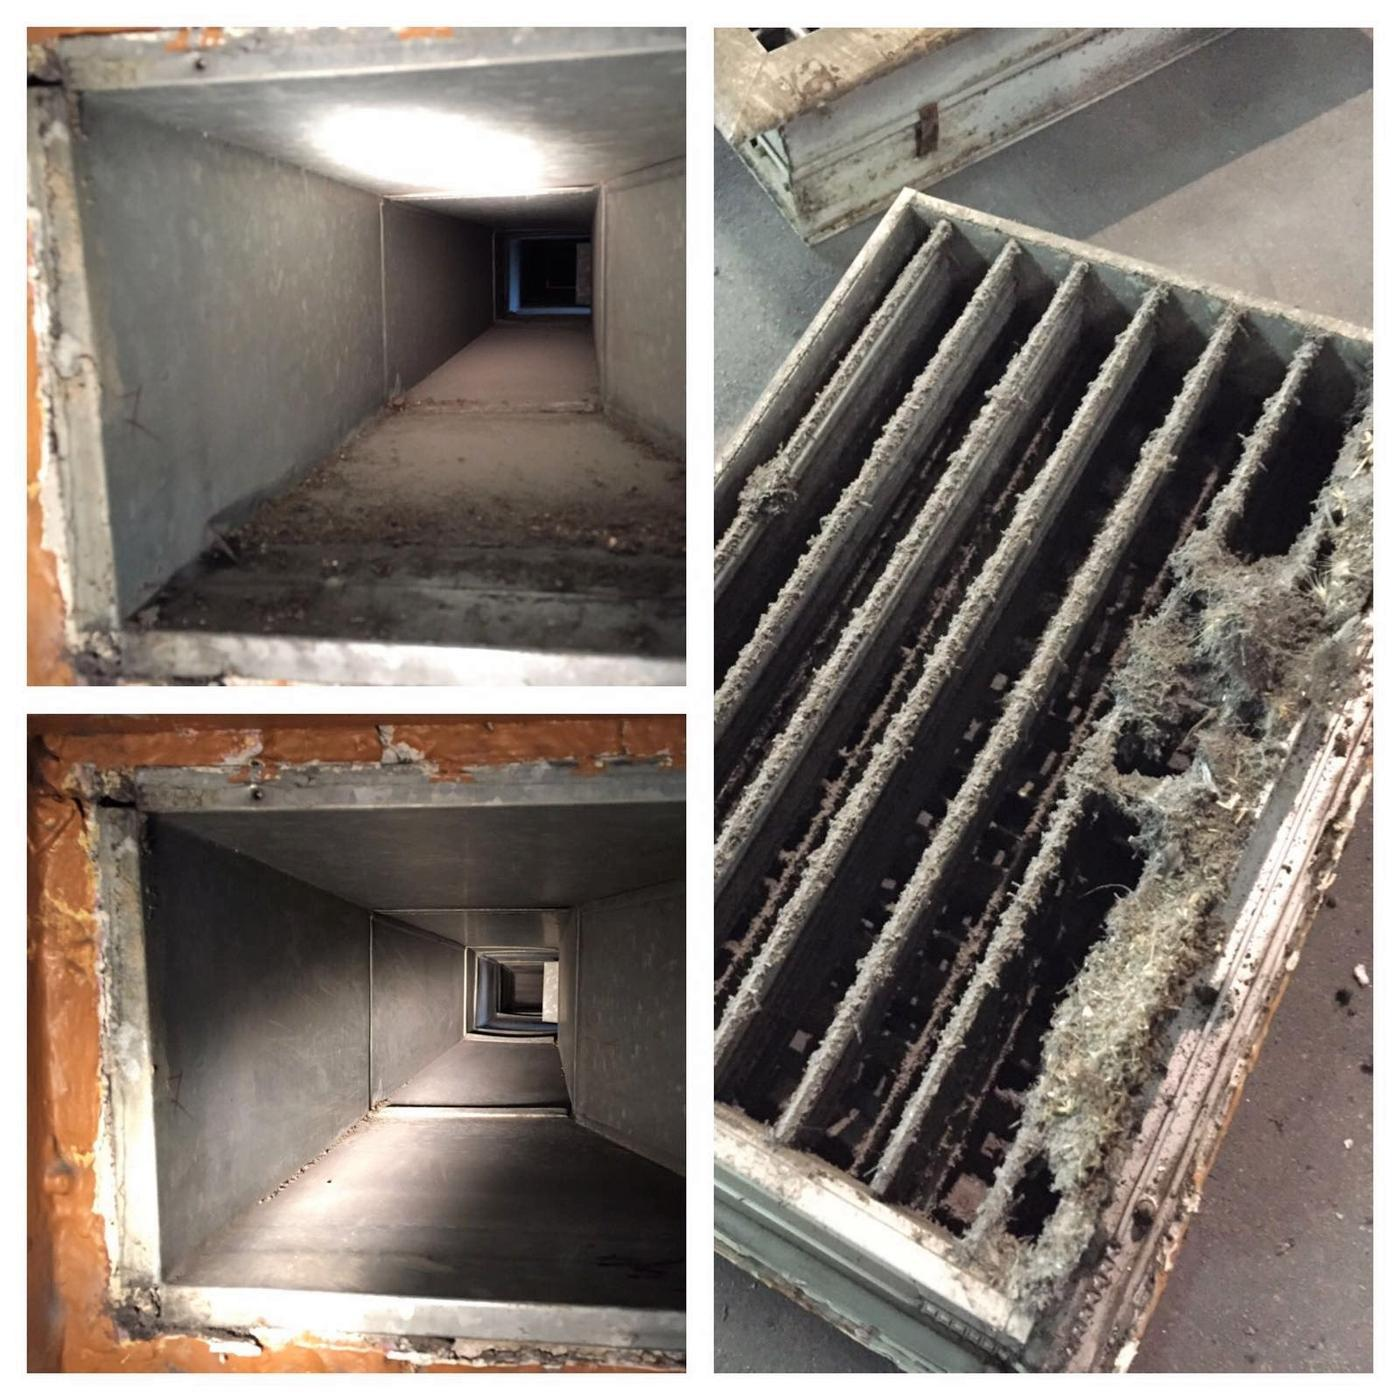 mold removal off the air ducts that people were breathing in in Miramar, FL